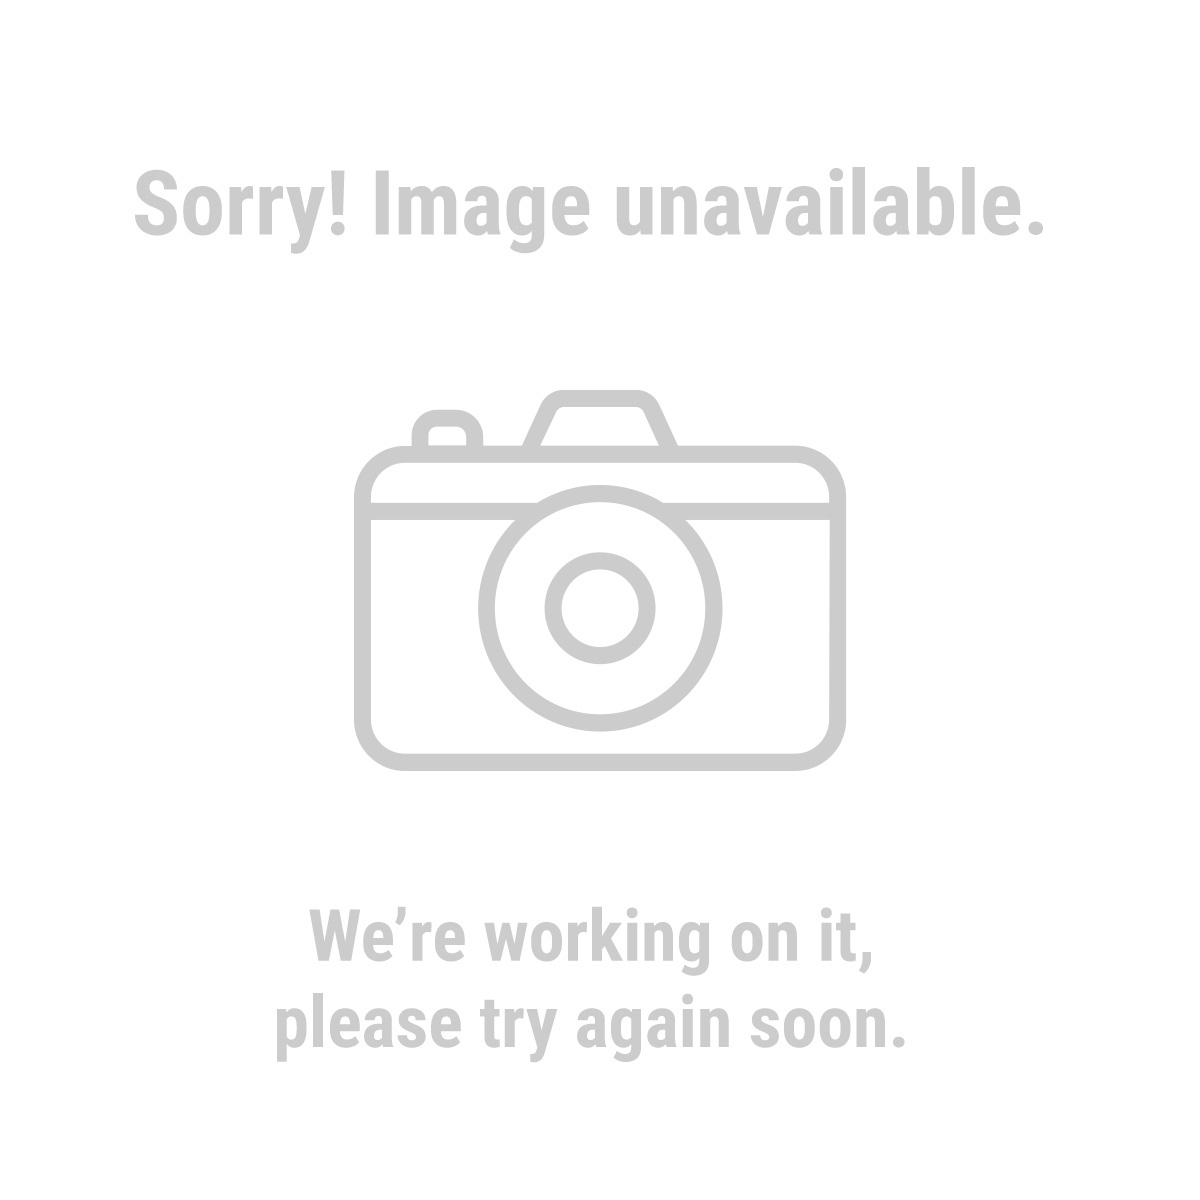 Krause & Becker 62677 1-1/2 in. Professional Paint Brush